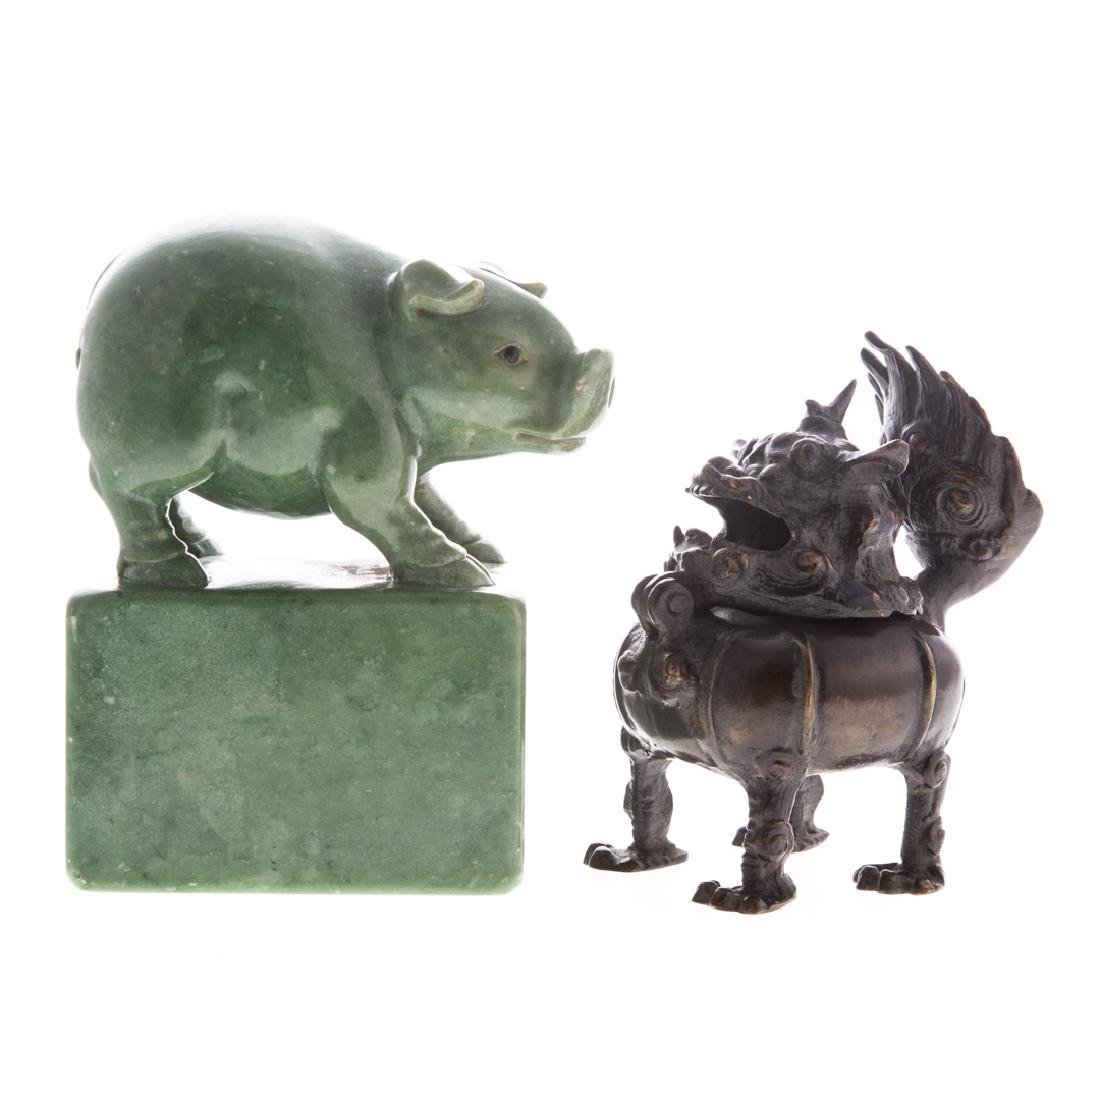 Chinese carved hardstone pig and bronze censor